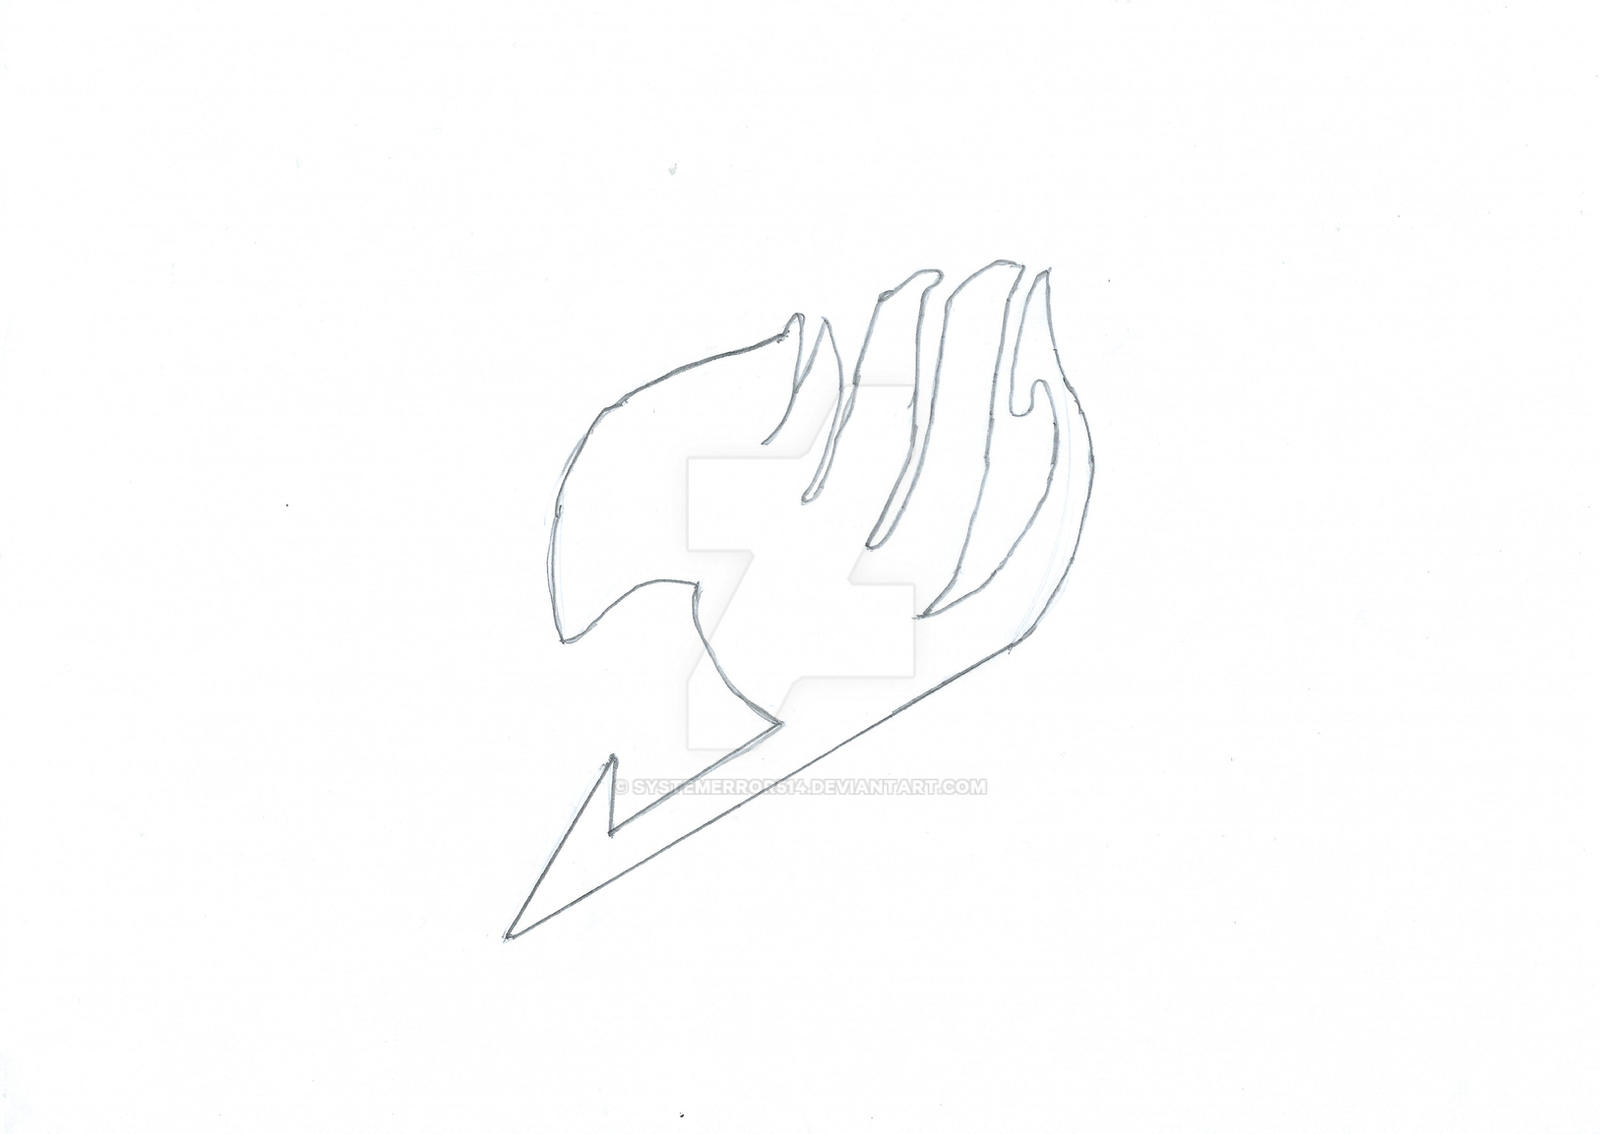 Fairy tail logo final drawing by systemerror514 on deviantart systemerror514 fairy tail logo final drawing by systemerror514 buycottarizona Gallery